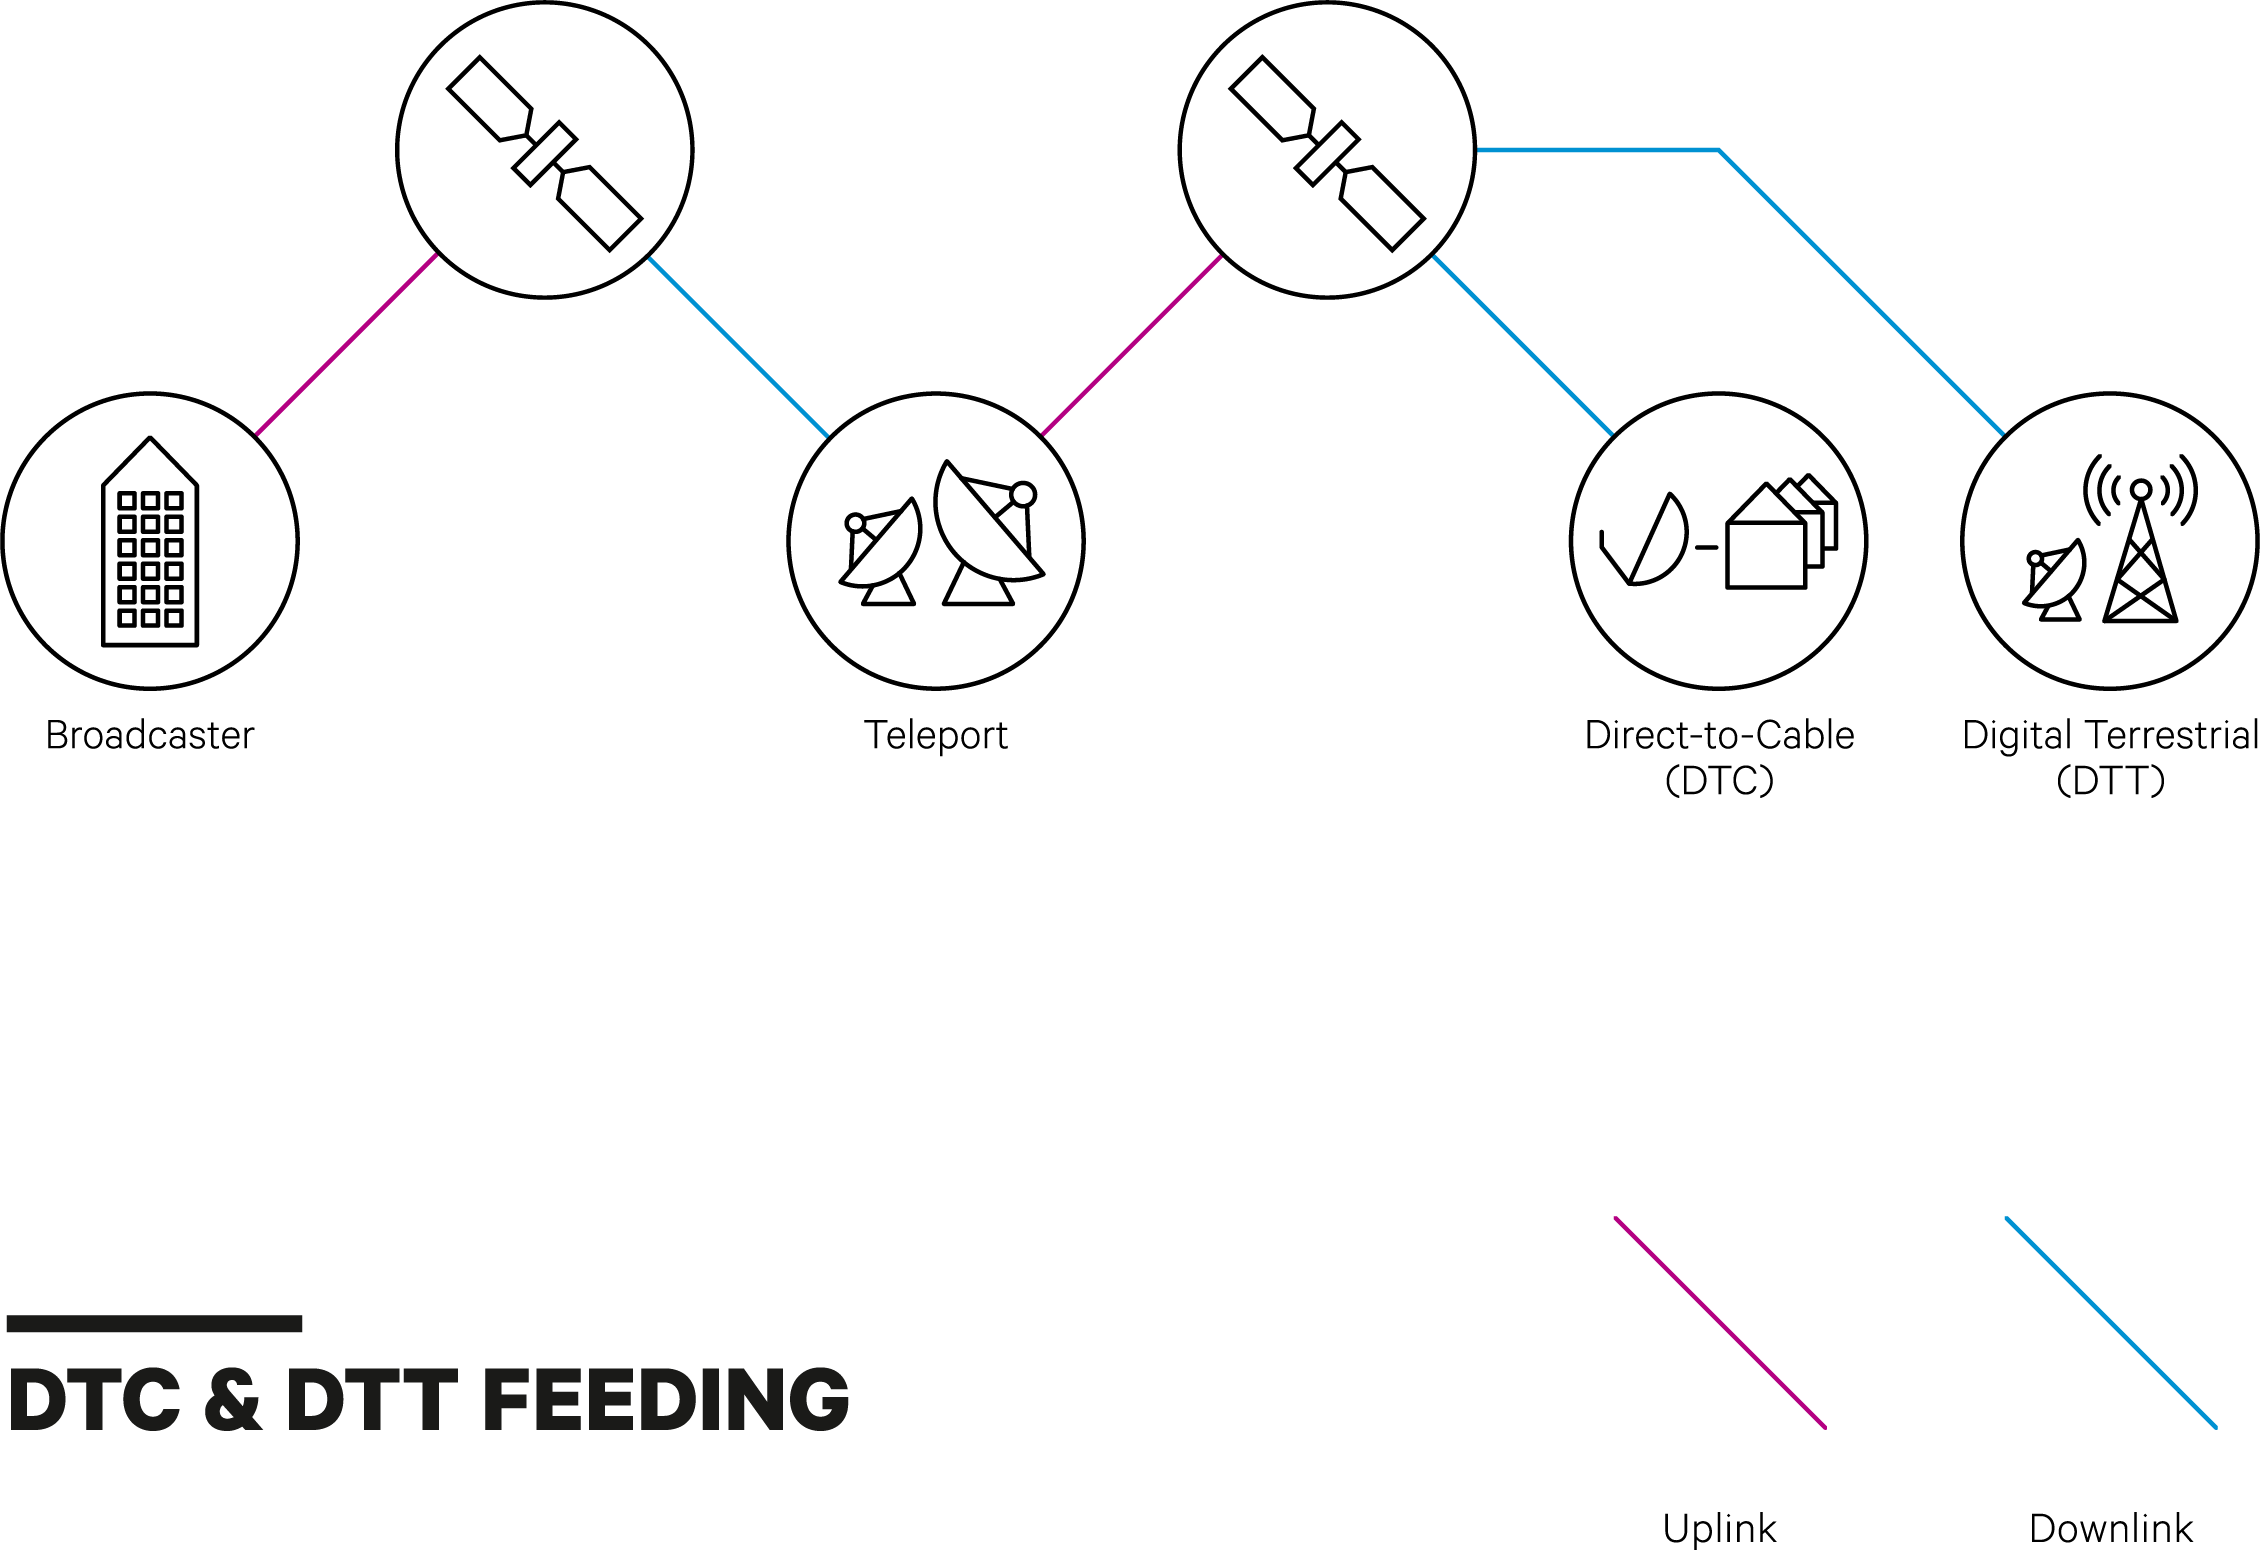 DTC & DTT Diagram